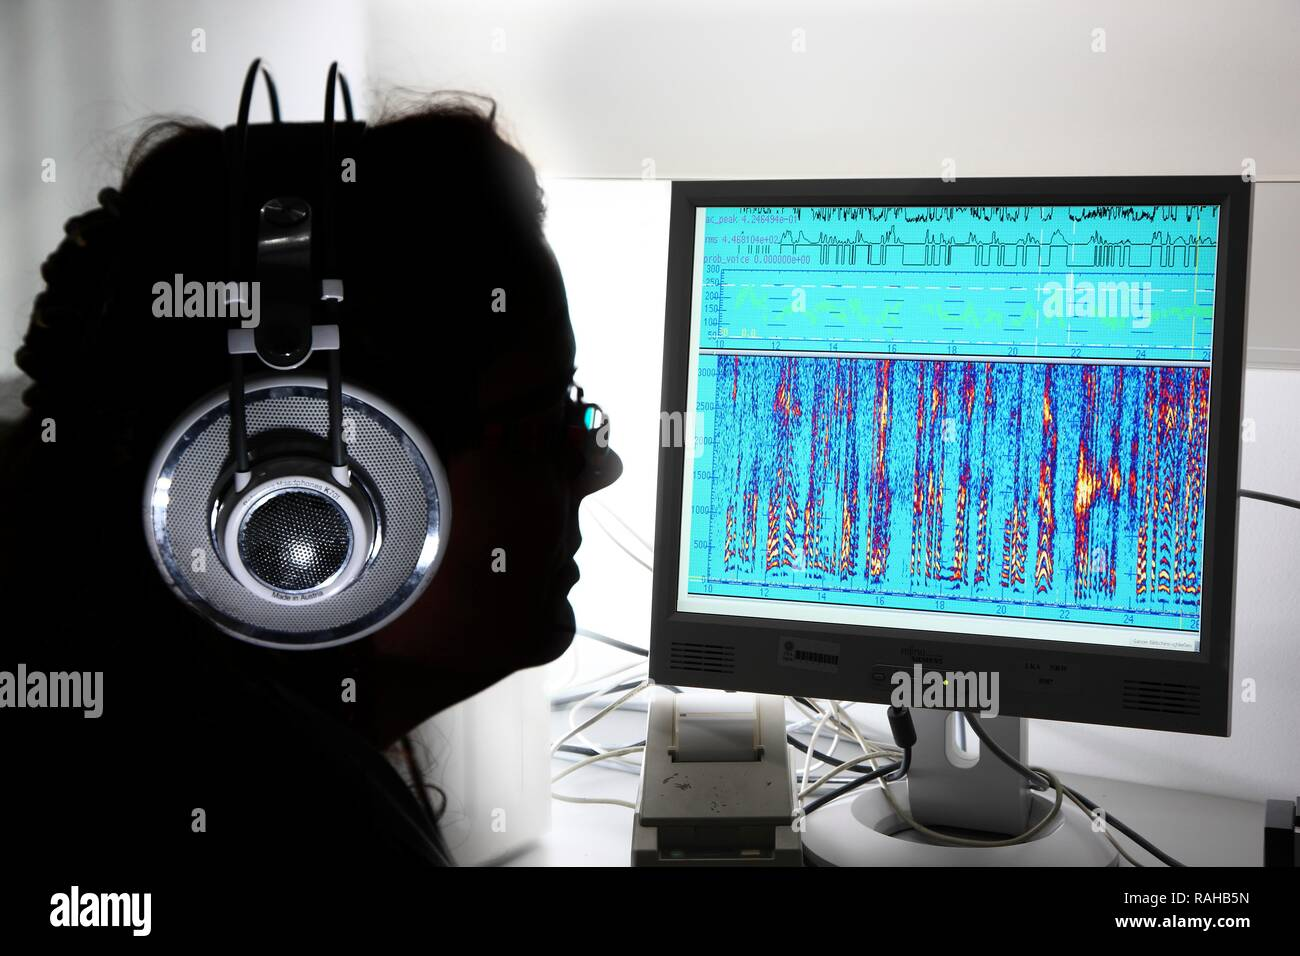 Kriminaltechnisches Institut Kti Forensic Science Institute Department Of Speech Analysis Graphical Depiction Of Voice Stock Photo Alamy